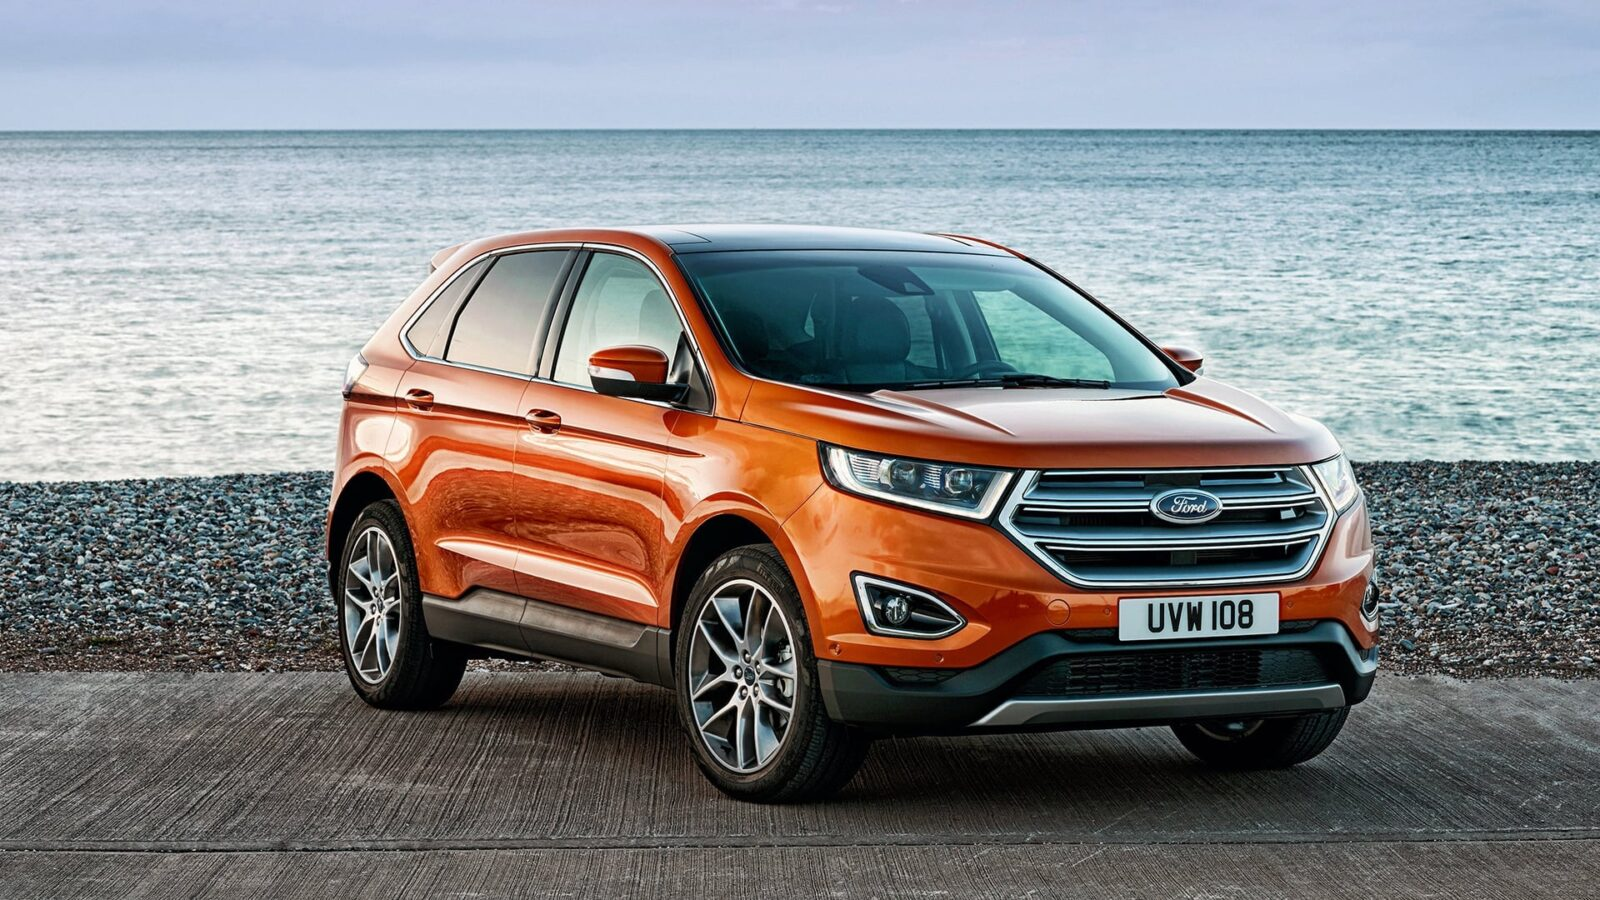 Red 2015 Ford Edge full HD image